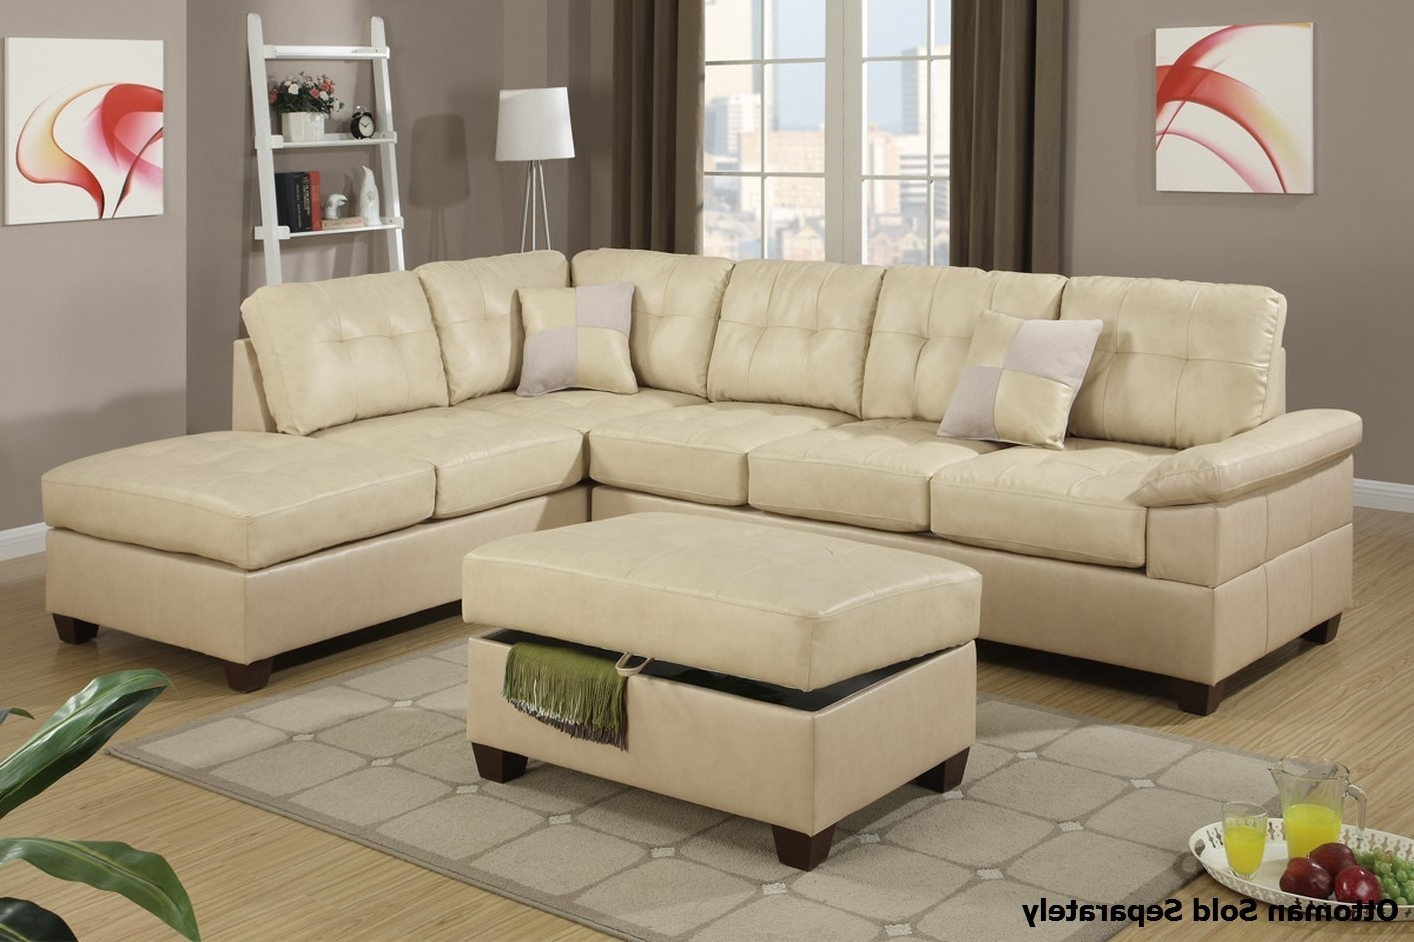 2019 Beige Sectional Sofas Regarding Sectional Sofa Design: Amazing Beige Leather Sectional Sofa Light (View 2 of 20)